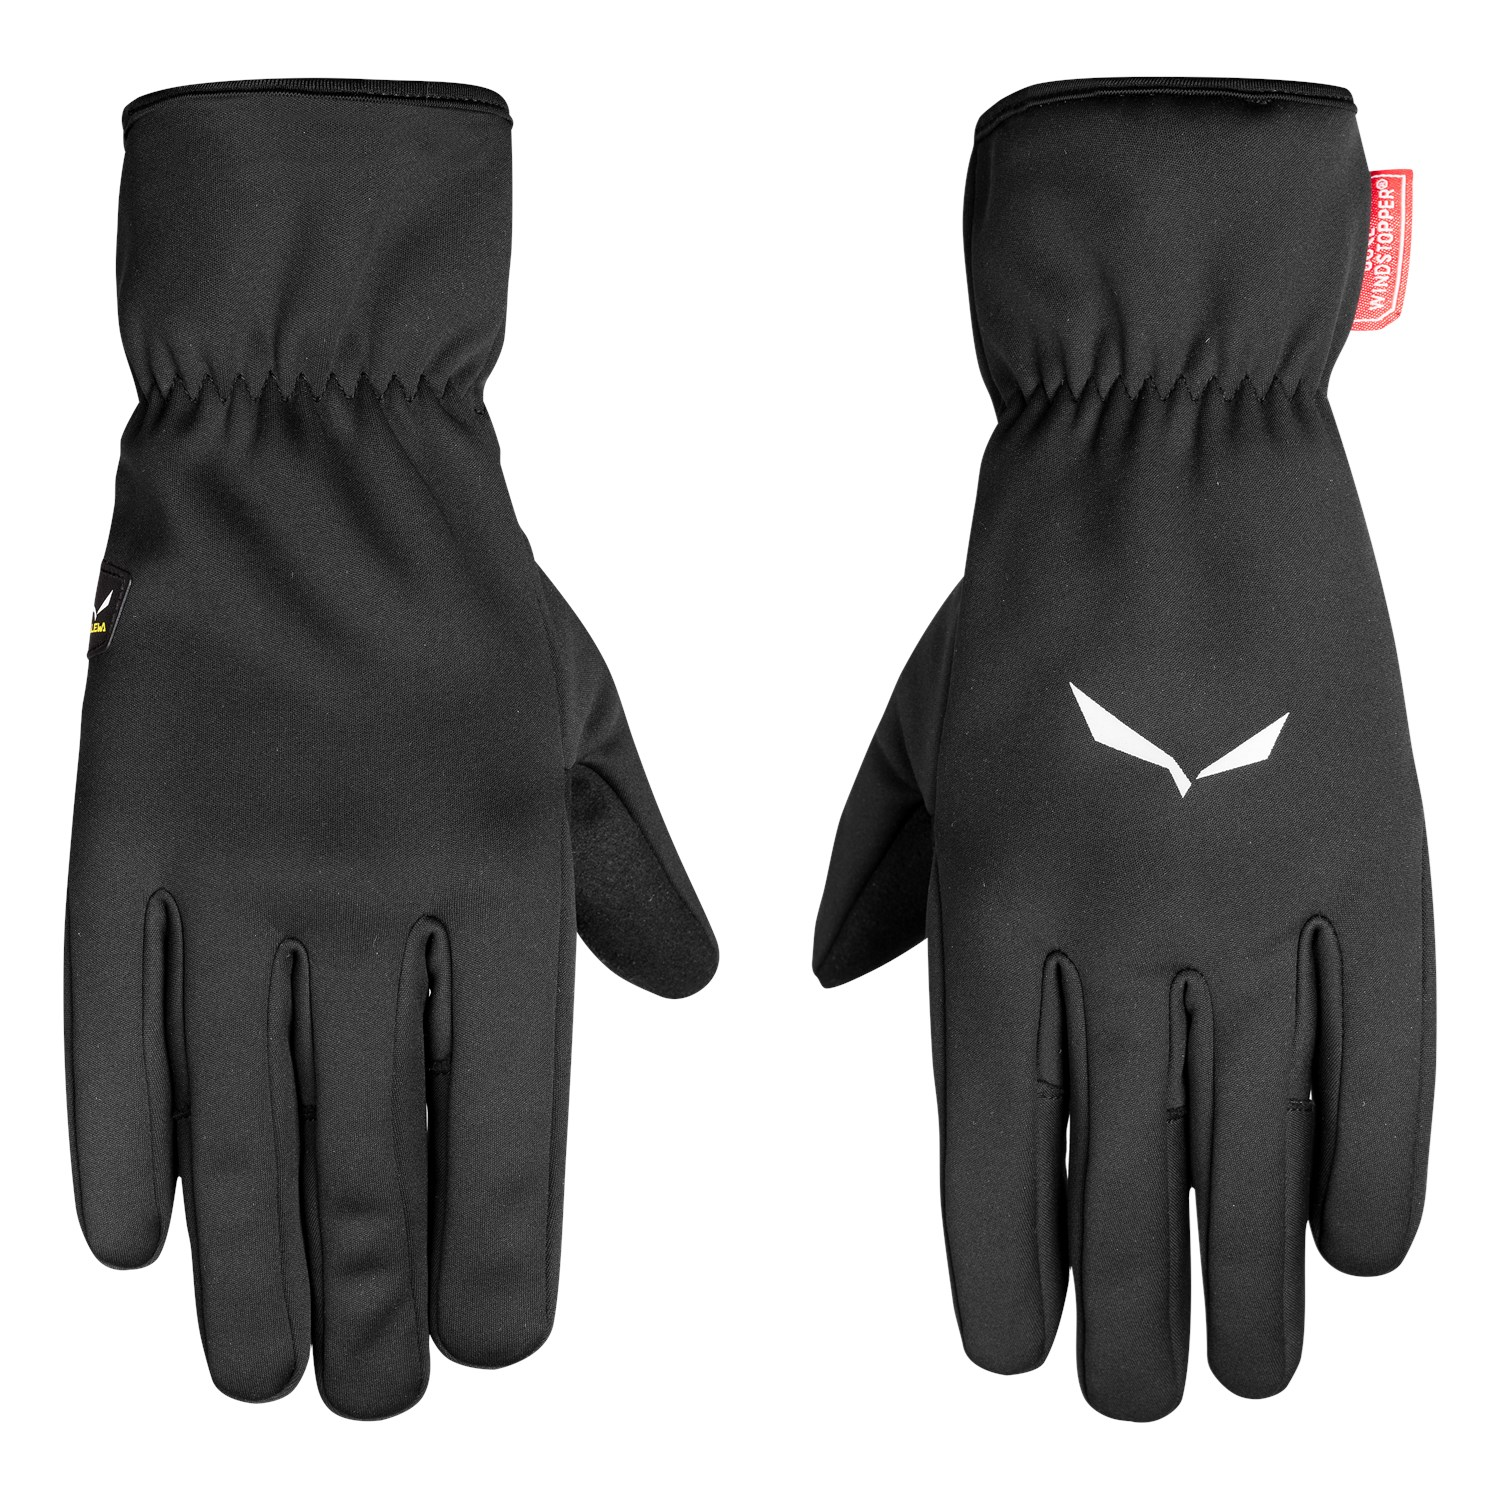 Salewa Finger Gloves Gore Windstopper Handschuhe